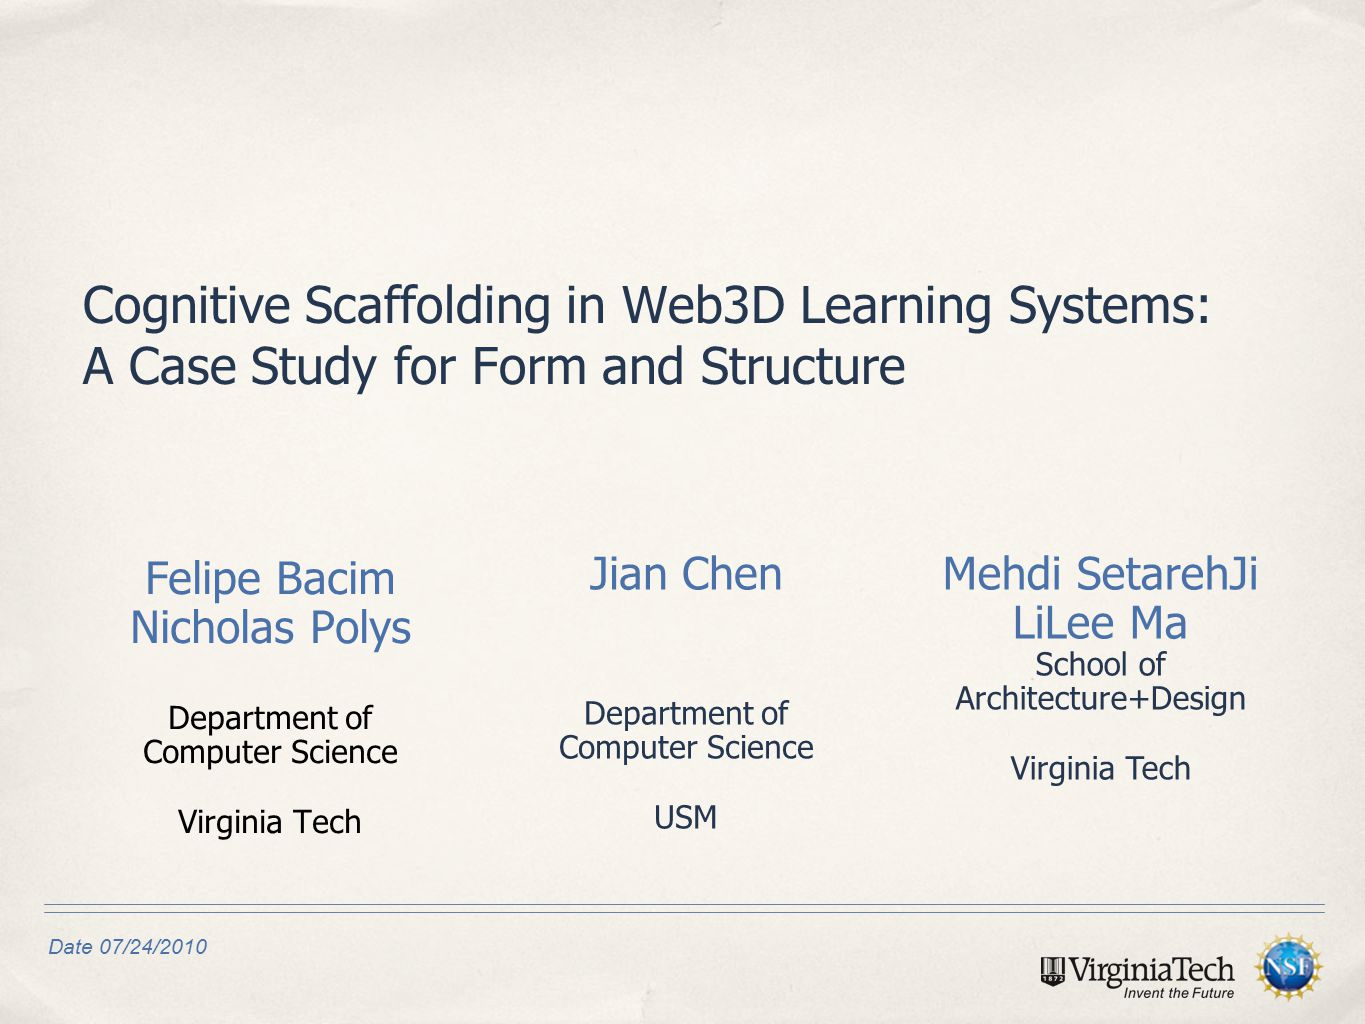 Date 07/24/2010 Felipe Bacim Nicholas Polys Department of Computer Science Virginia Tech Cognitive Scaffolding in Web3D Learning Systems: A Case Study